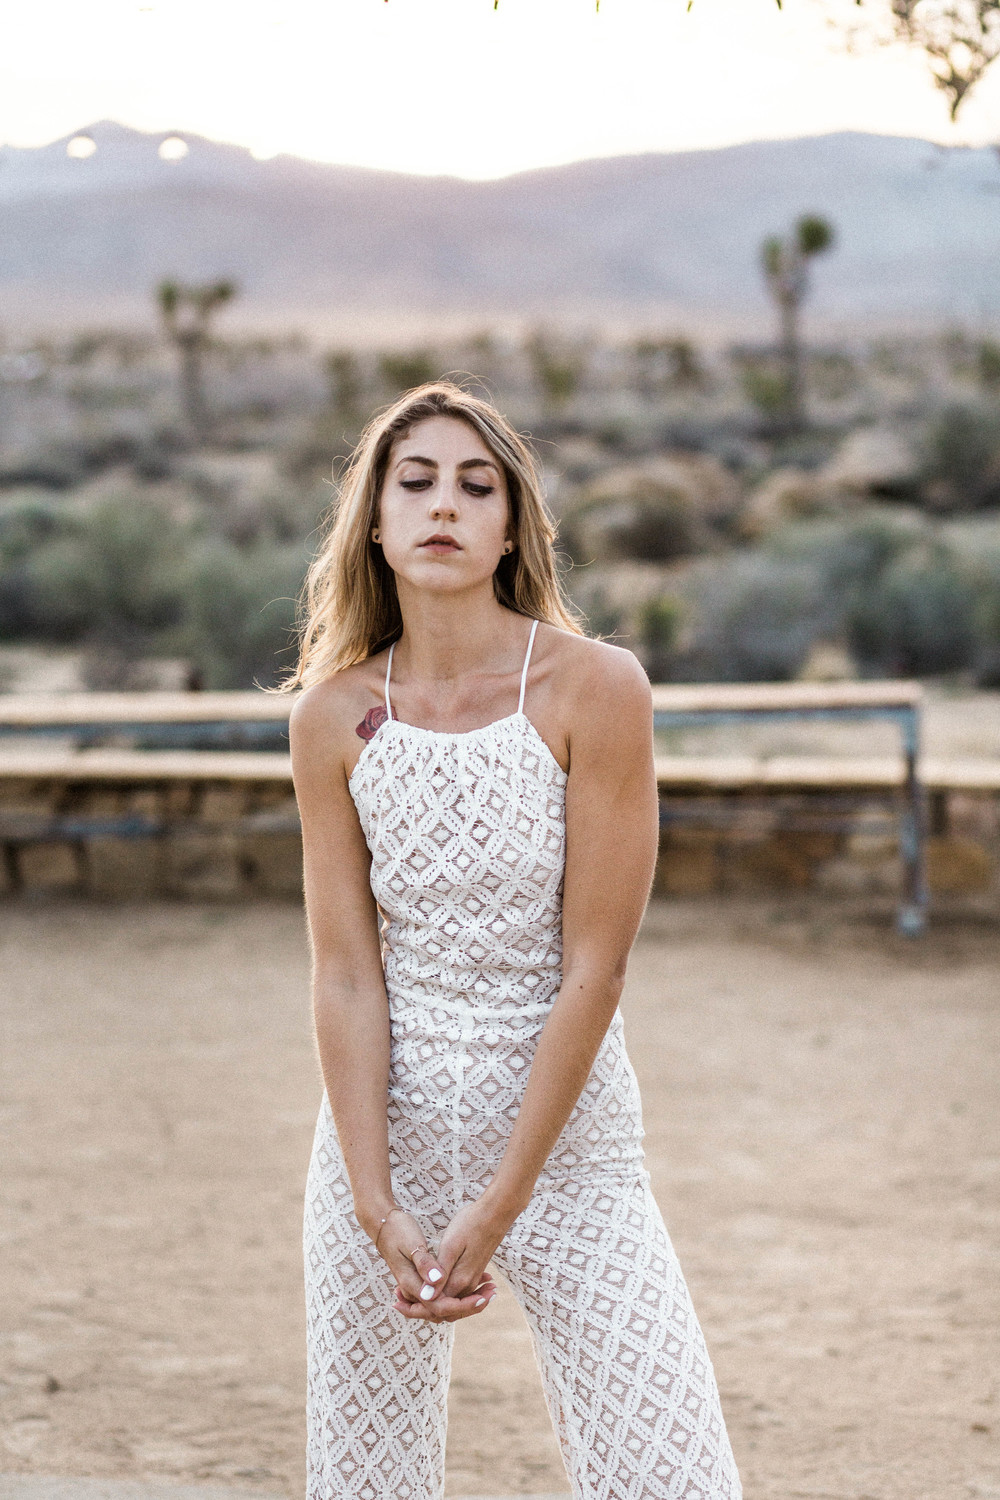 joshua-tree-wedding-editorial-photography-by-sarah-falugo-photography-0485.jpg